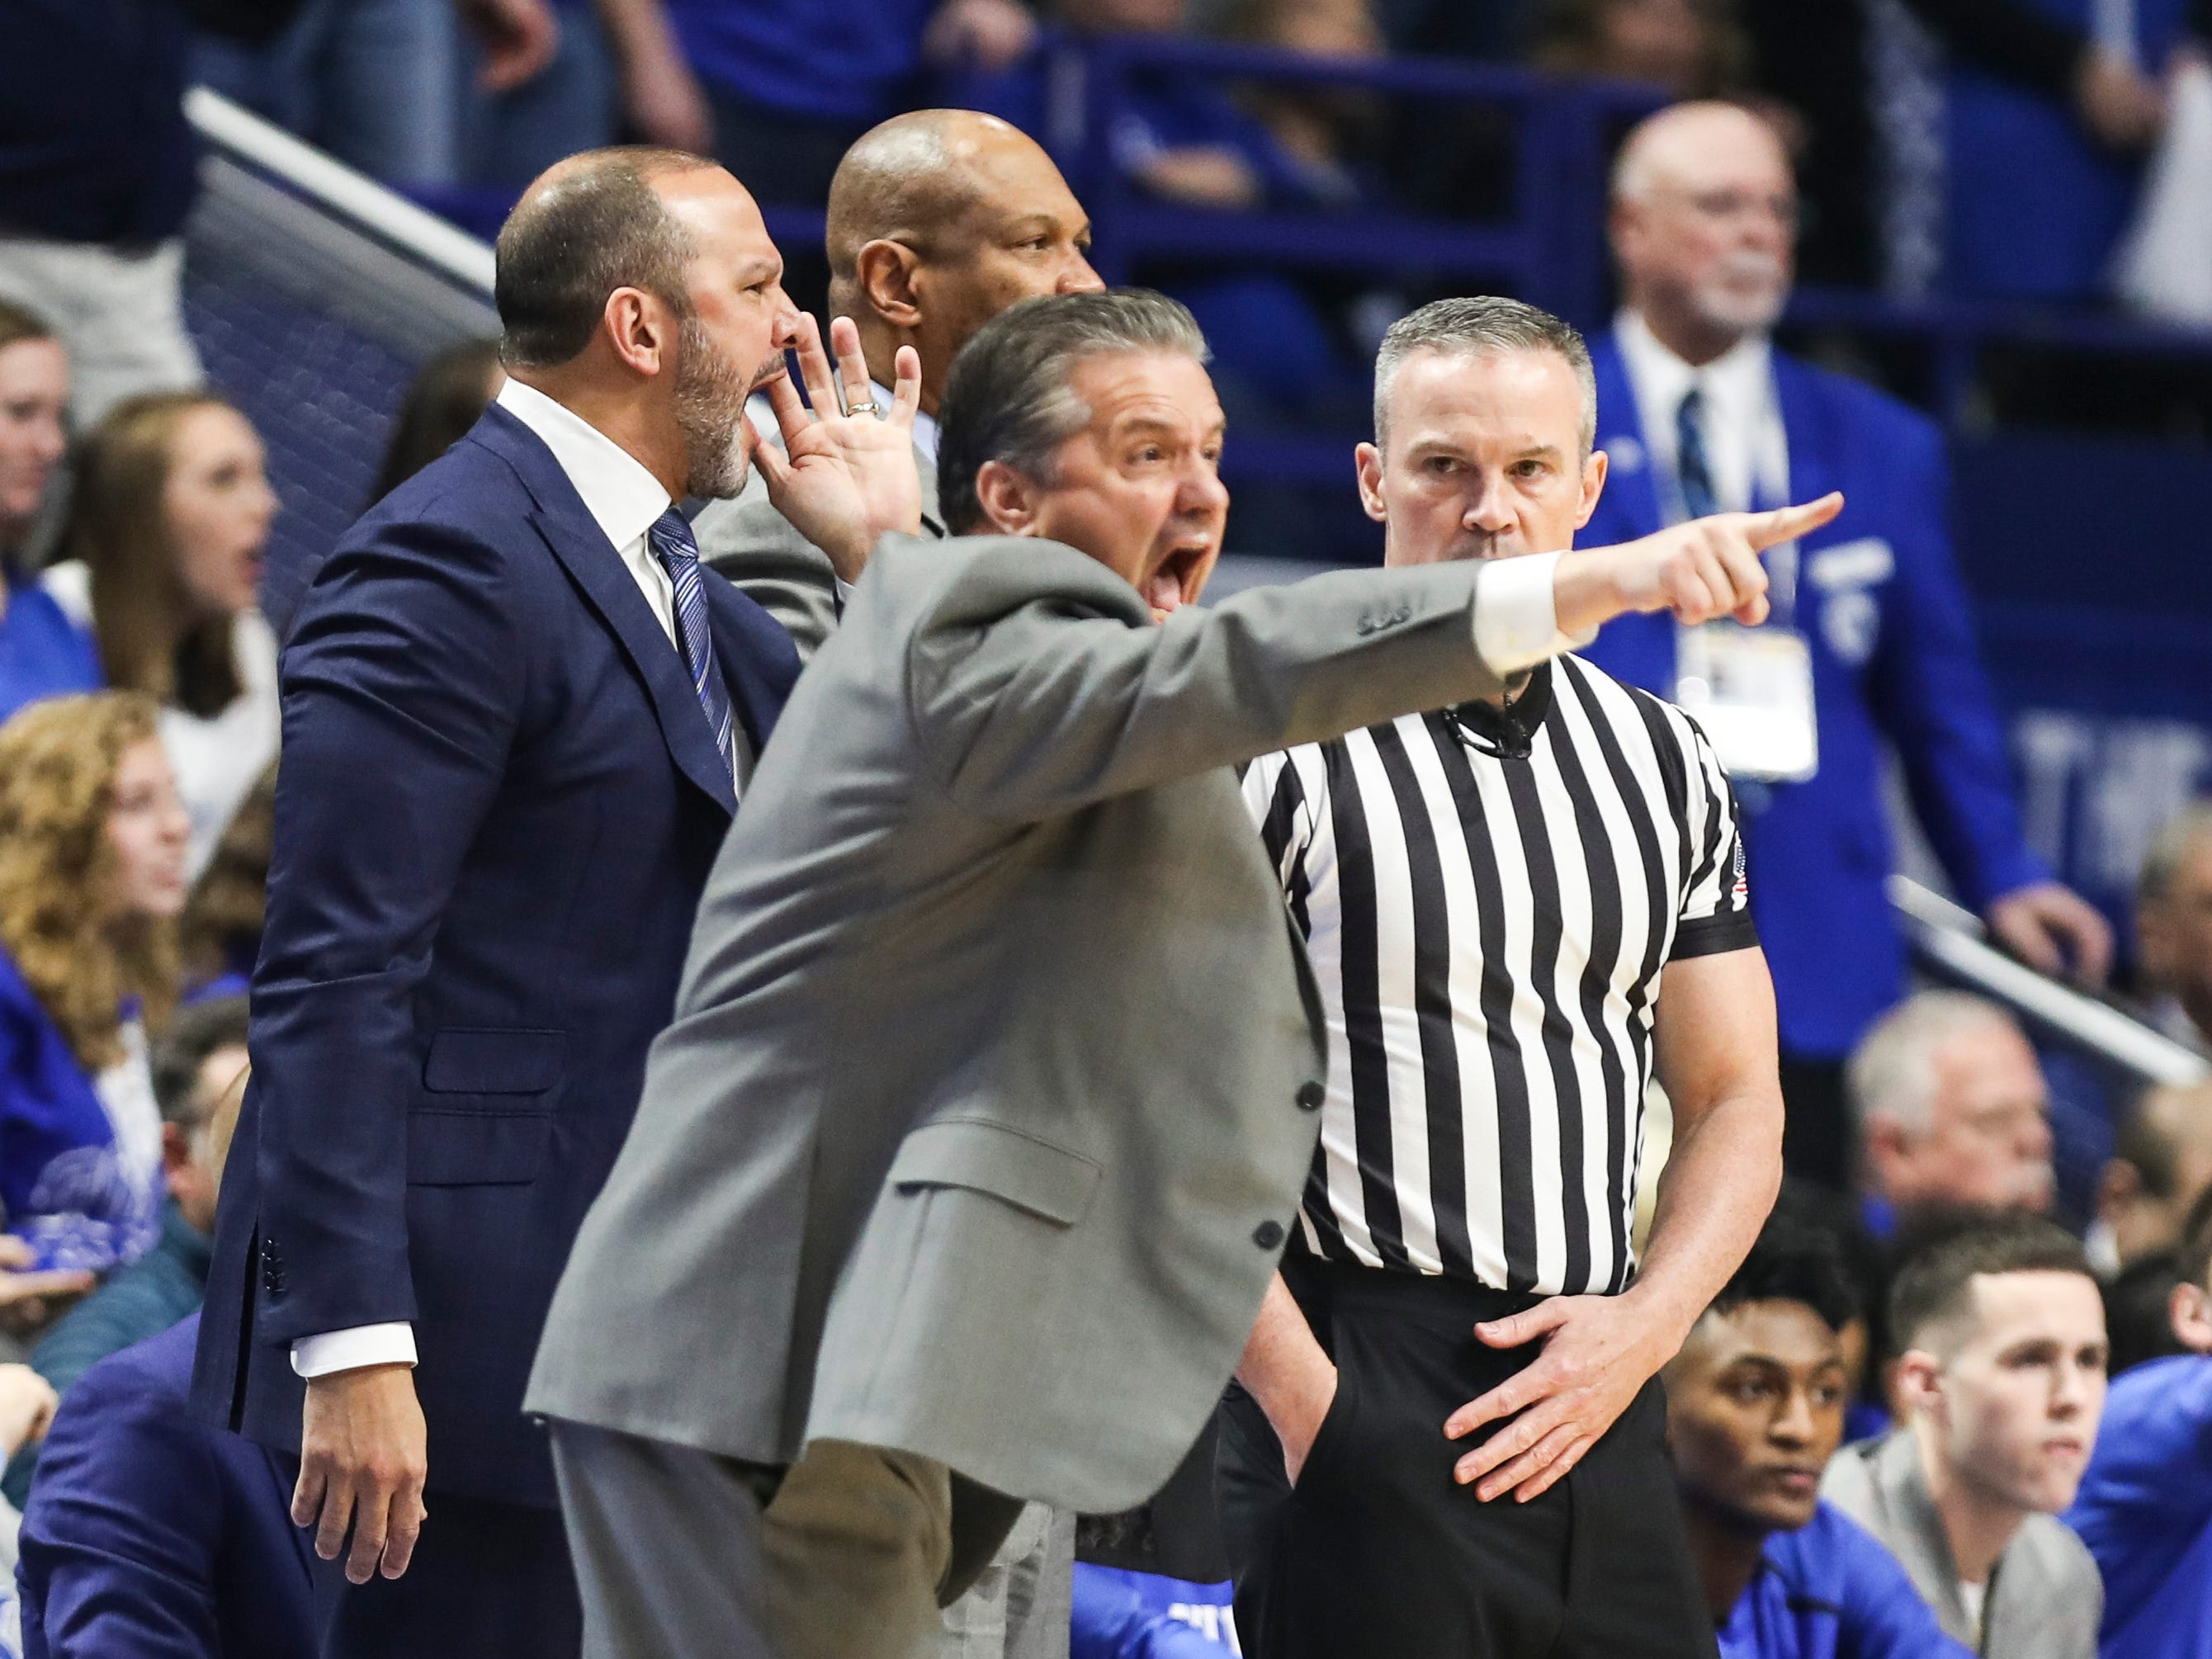 Kentucky's John Calipari screams during the first half in the game against Tennessee. Feb. 16, 2019